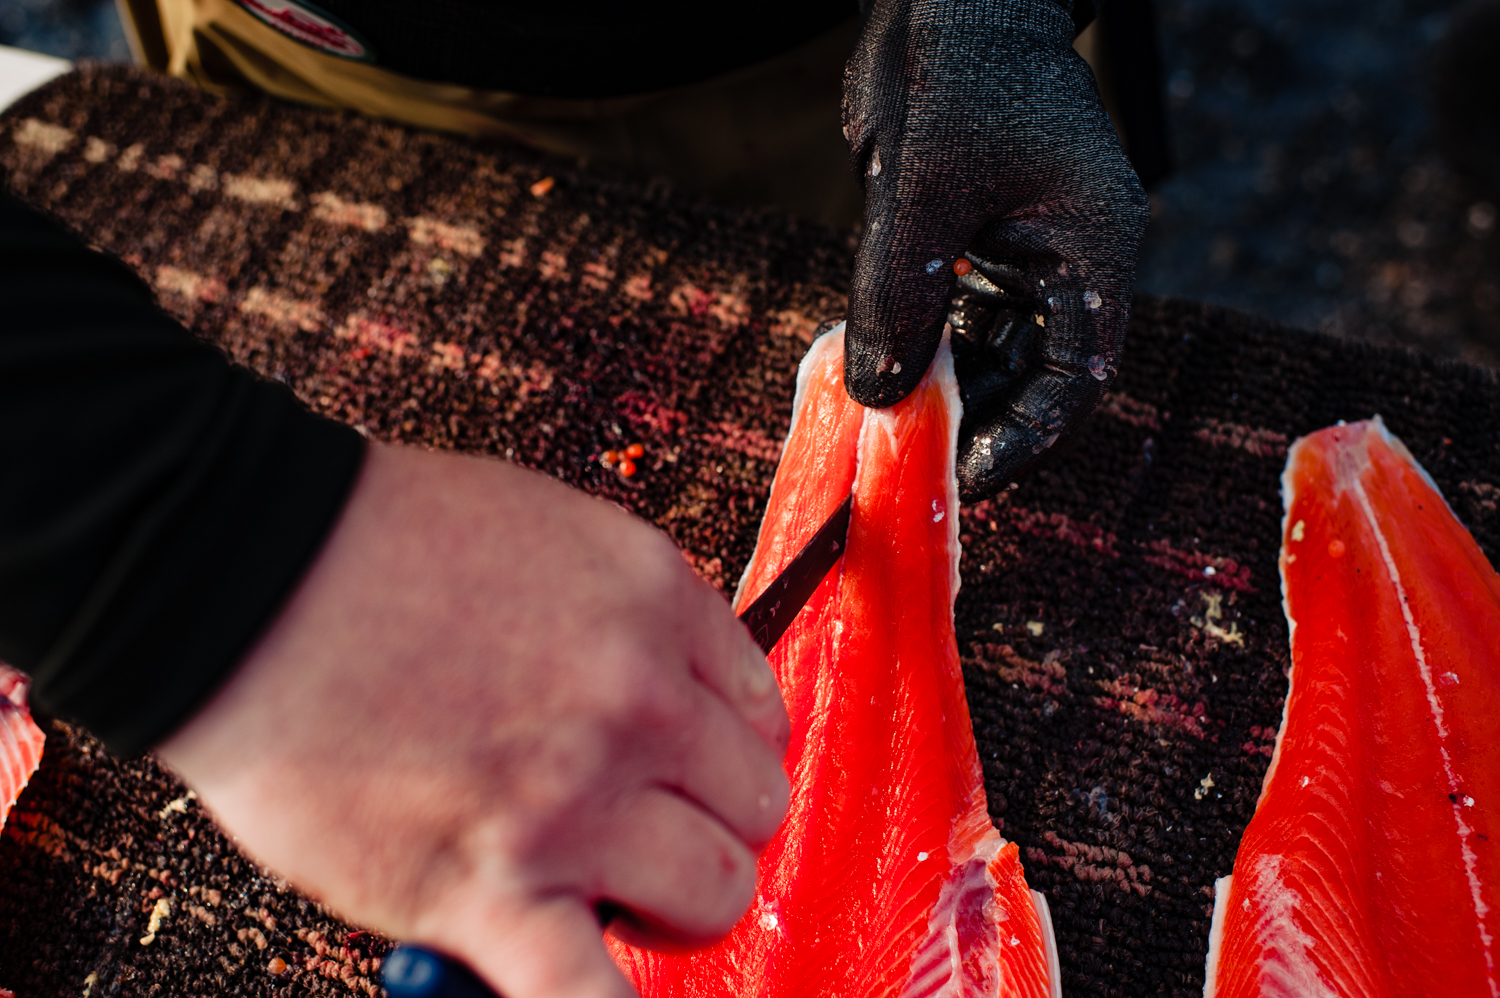 Step 17: In order to be able to handle the salmon easier, we cut a finger sized slit near the tail end.